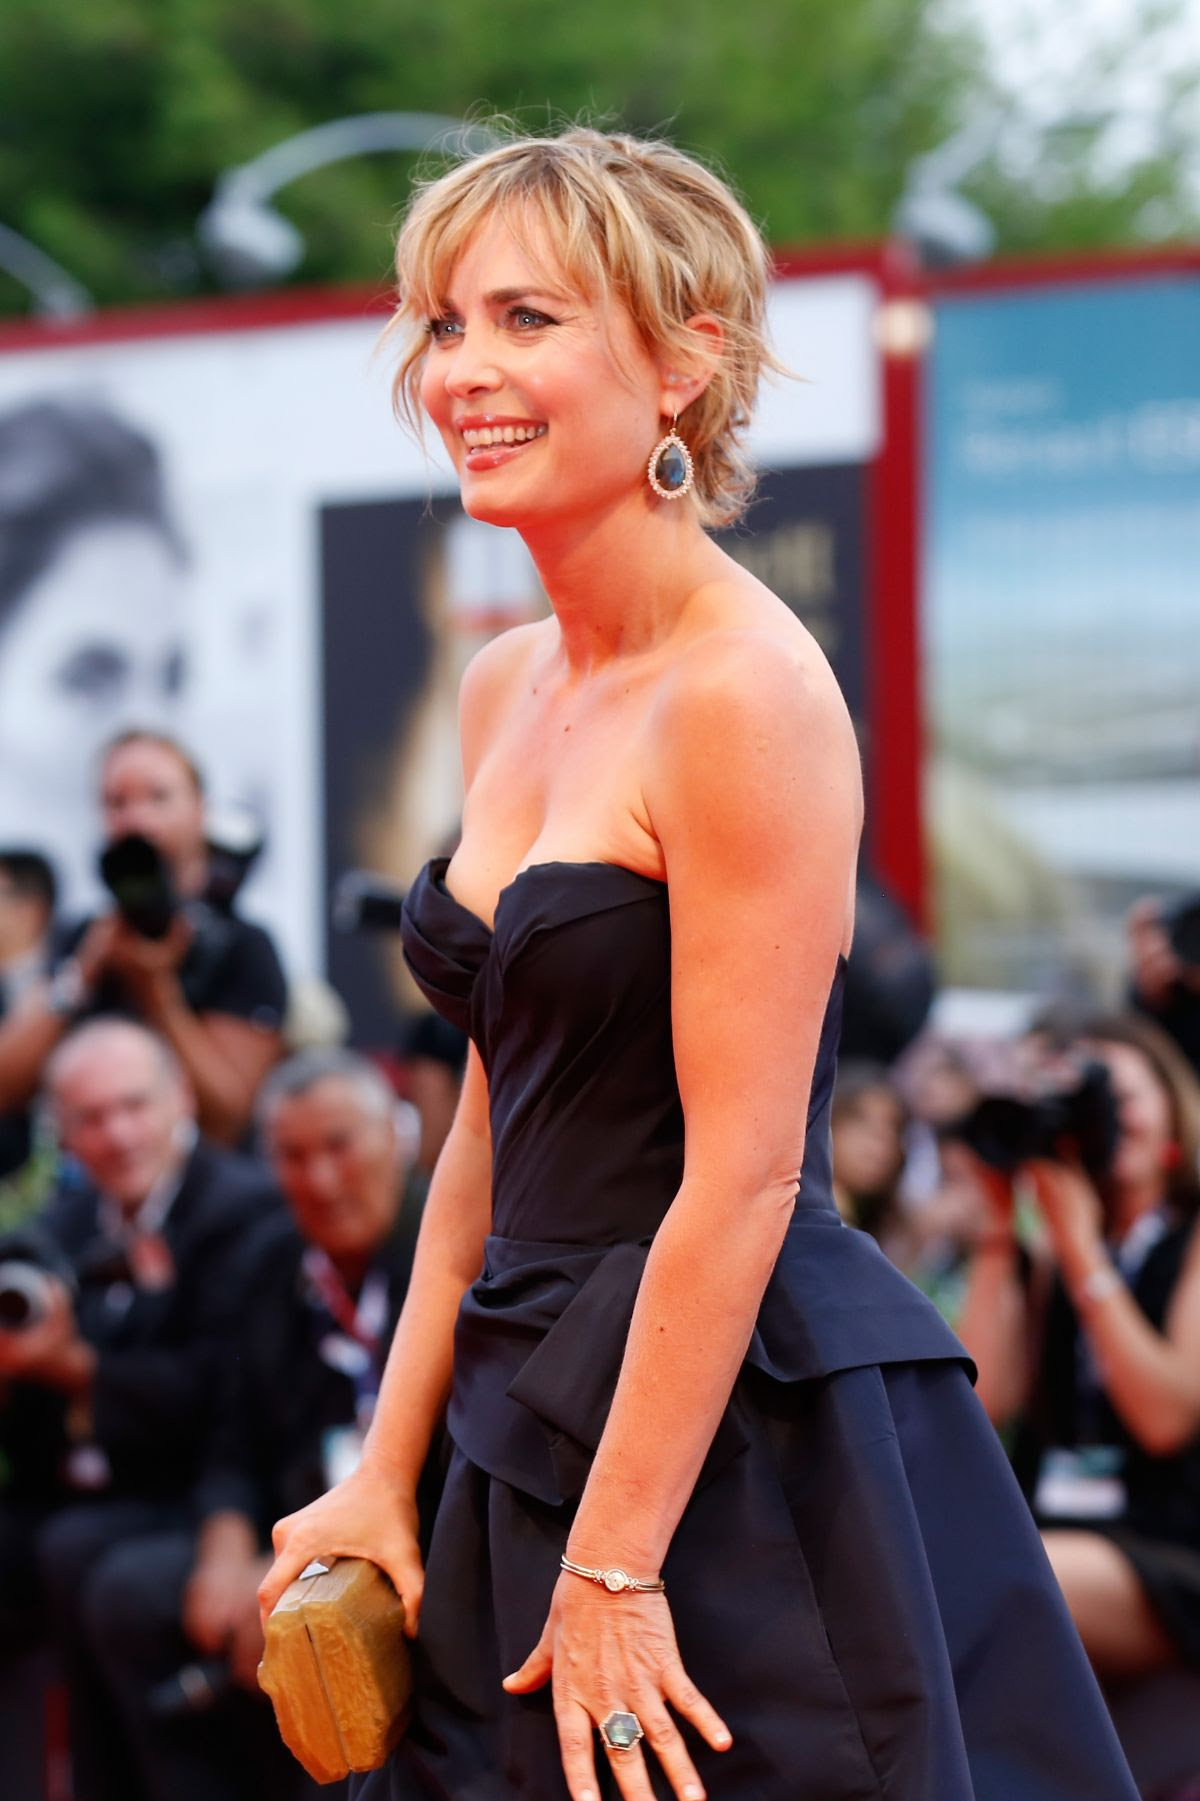 http://www.hawtcelebs.com/wp-content/uploads/2015/09/radha-mitchell-at-everest-premiere-and-72nd-venice-film-festival-opening-ceremony_5.jpg